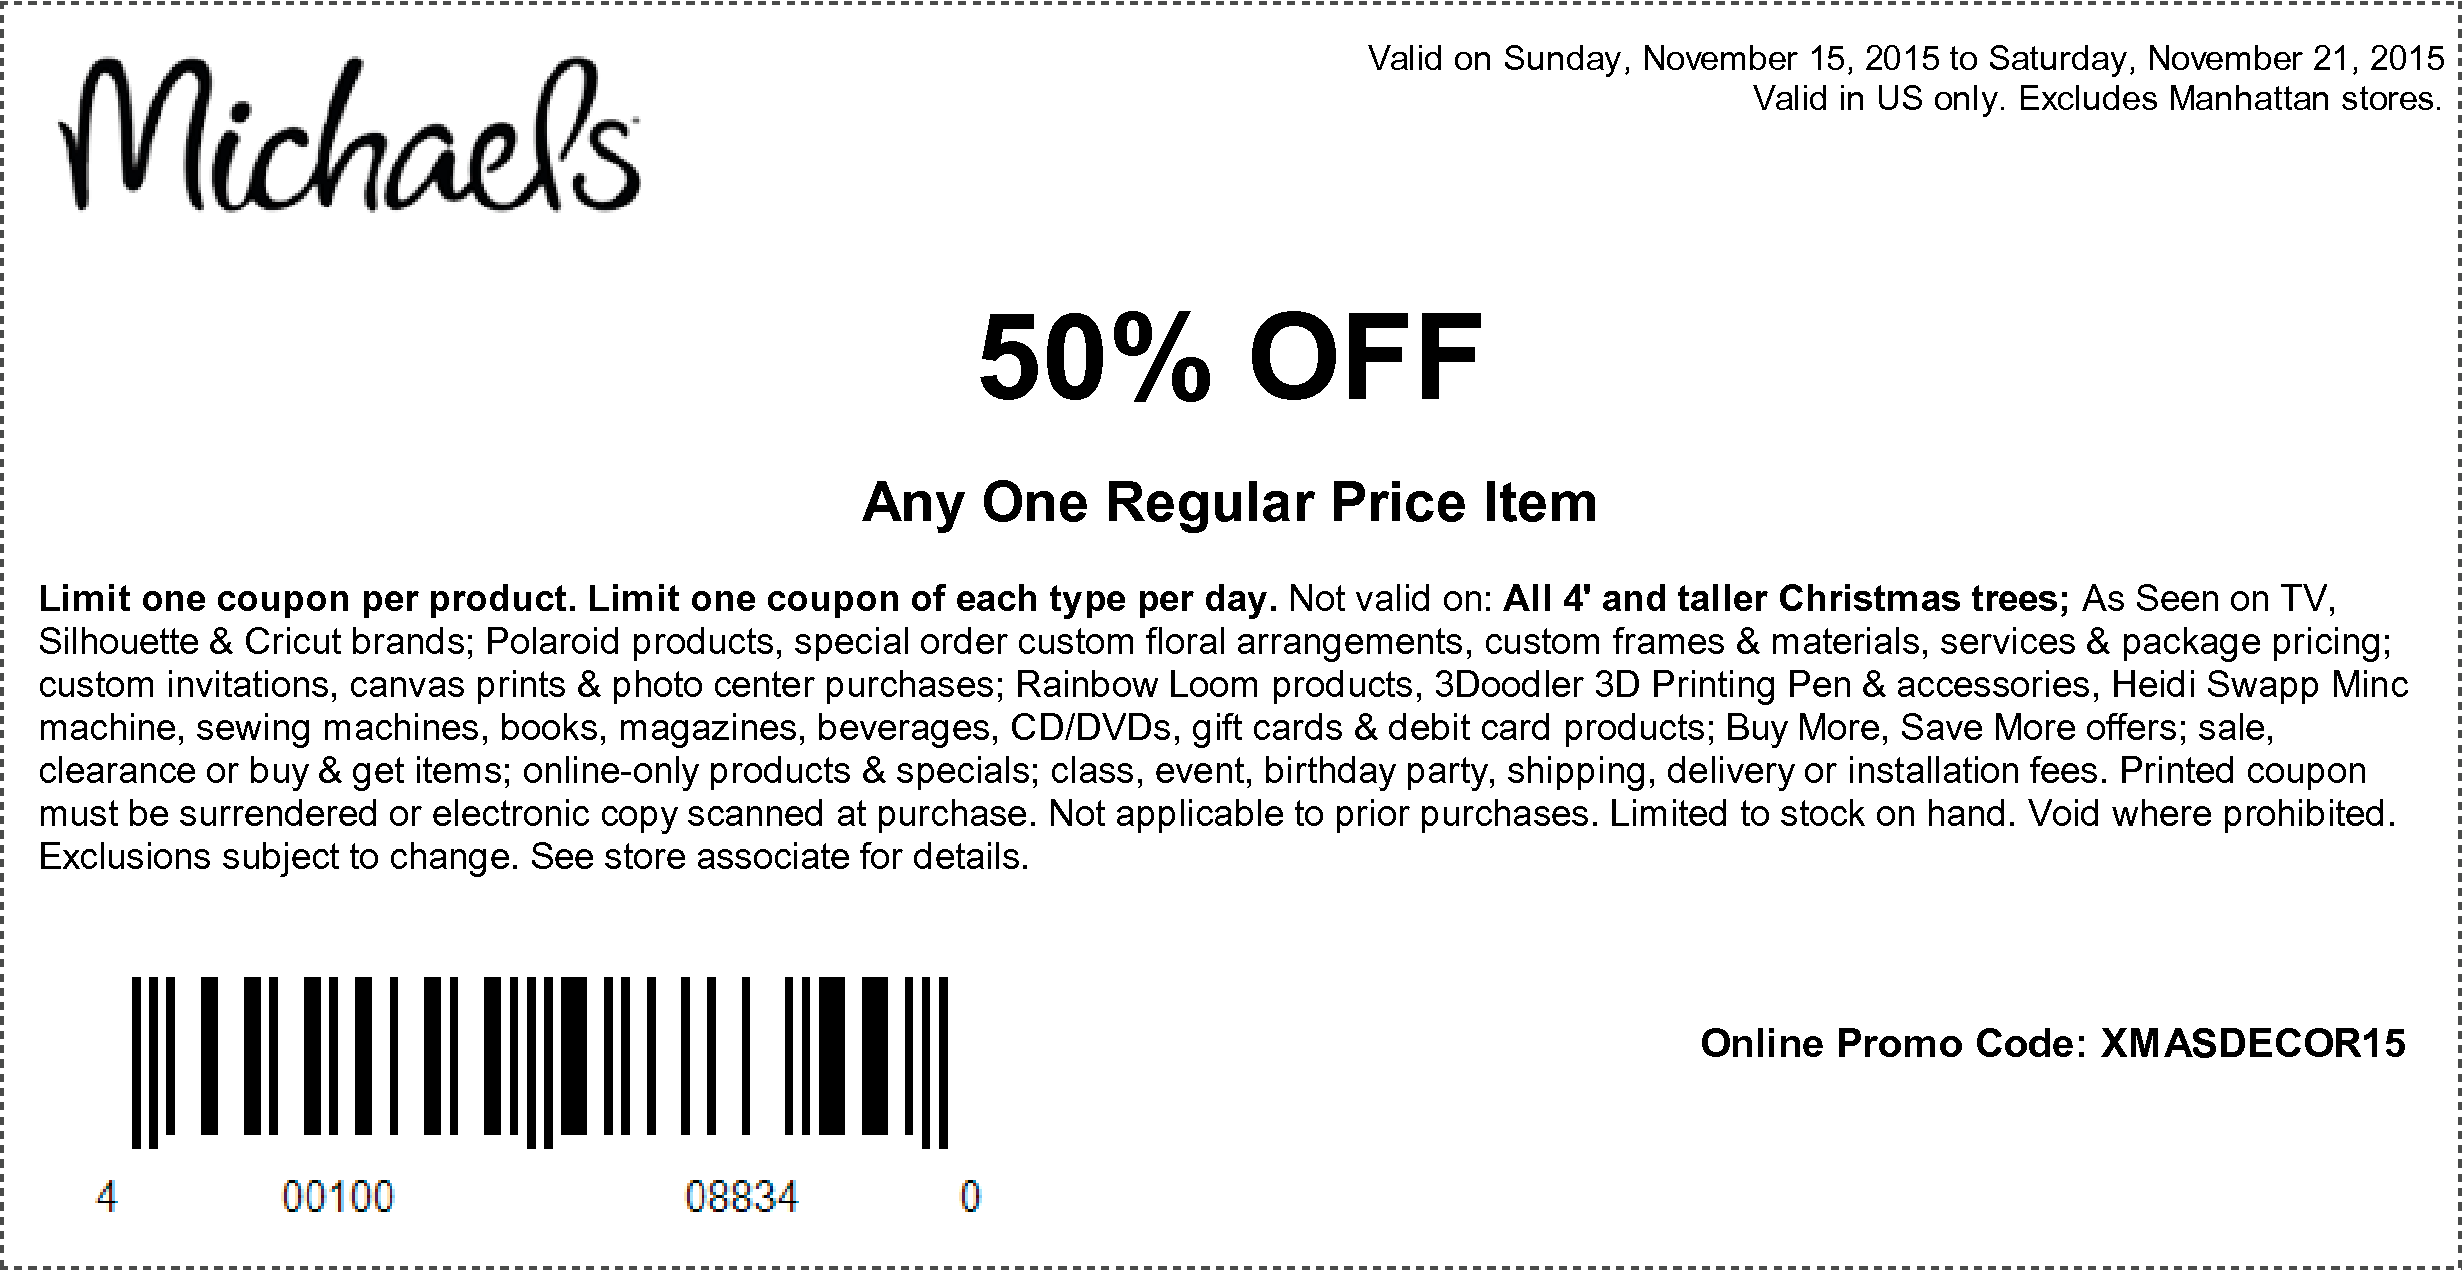 Michaels Coupon September 2017 50% off a single item at Michaels, or online via promo code XMASDECOR15